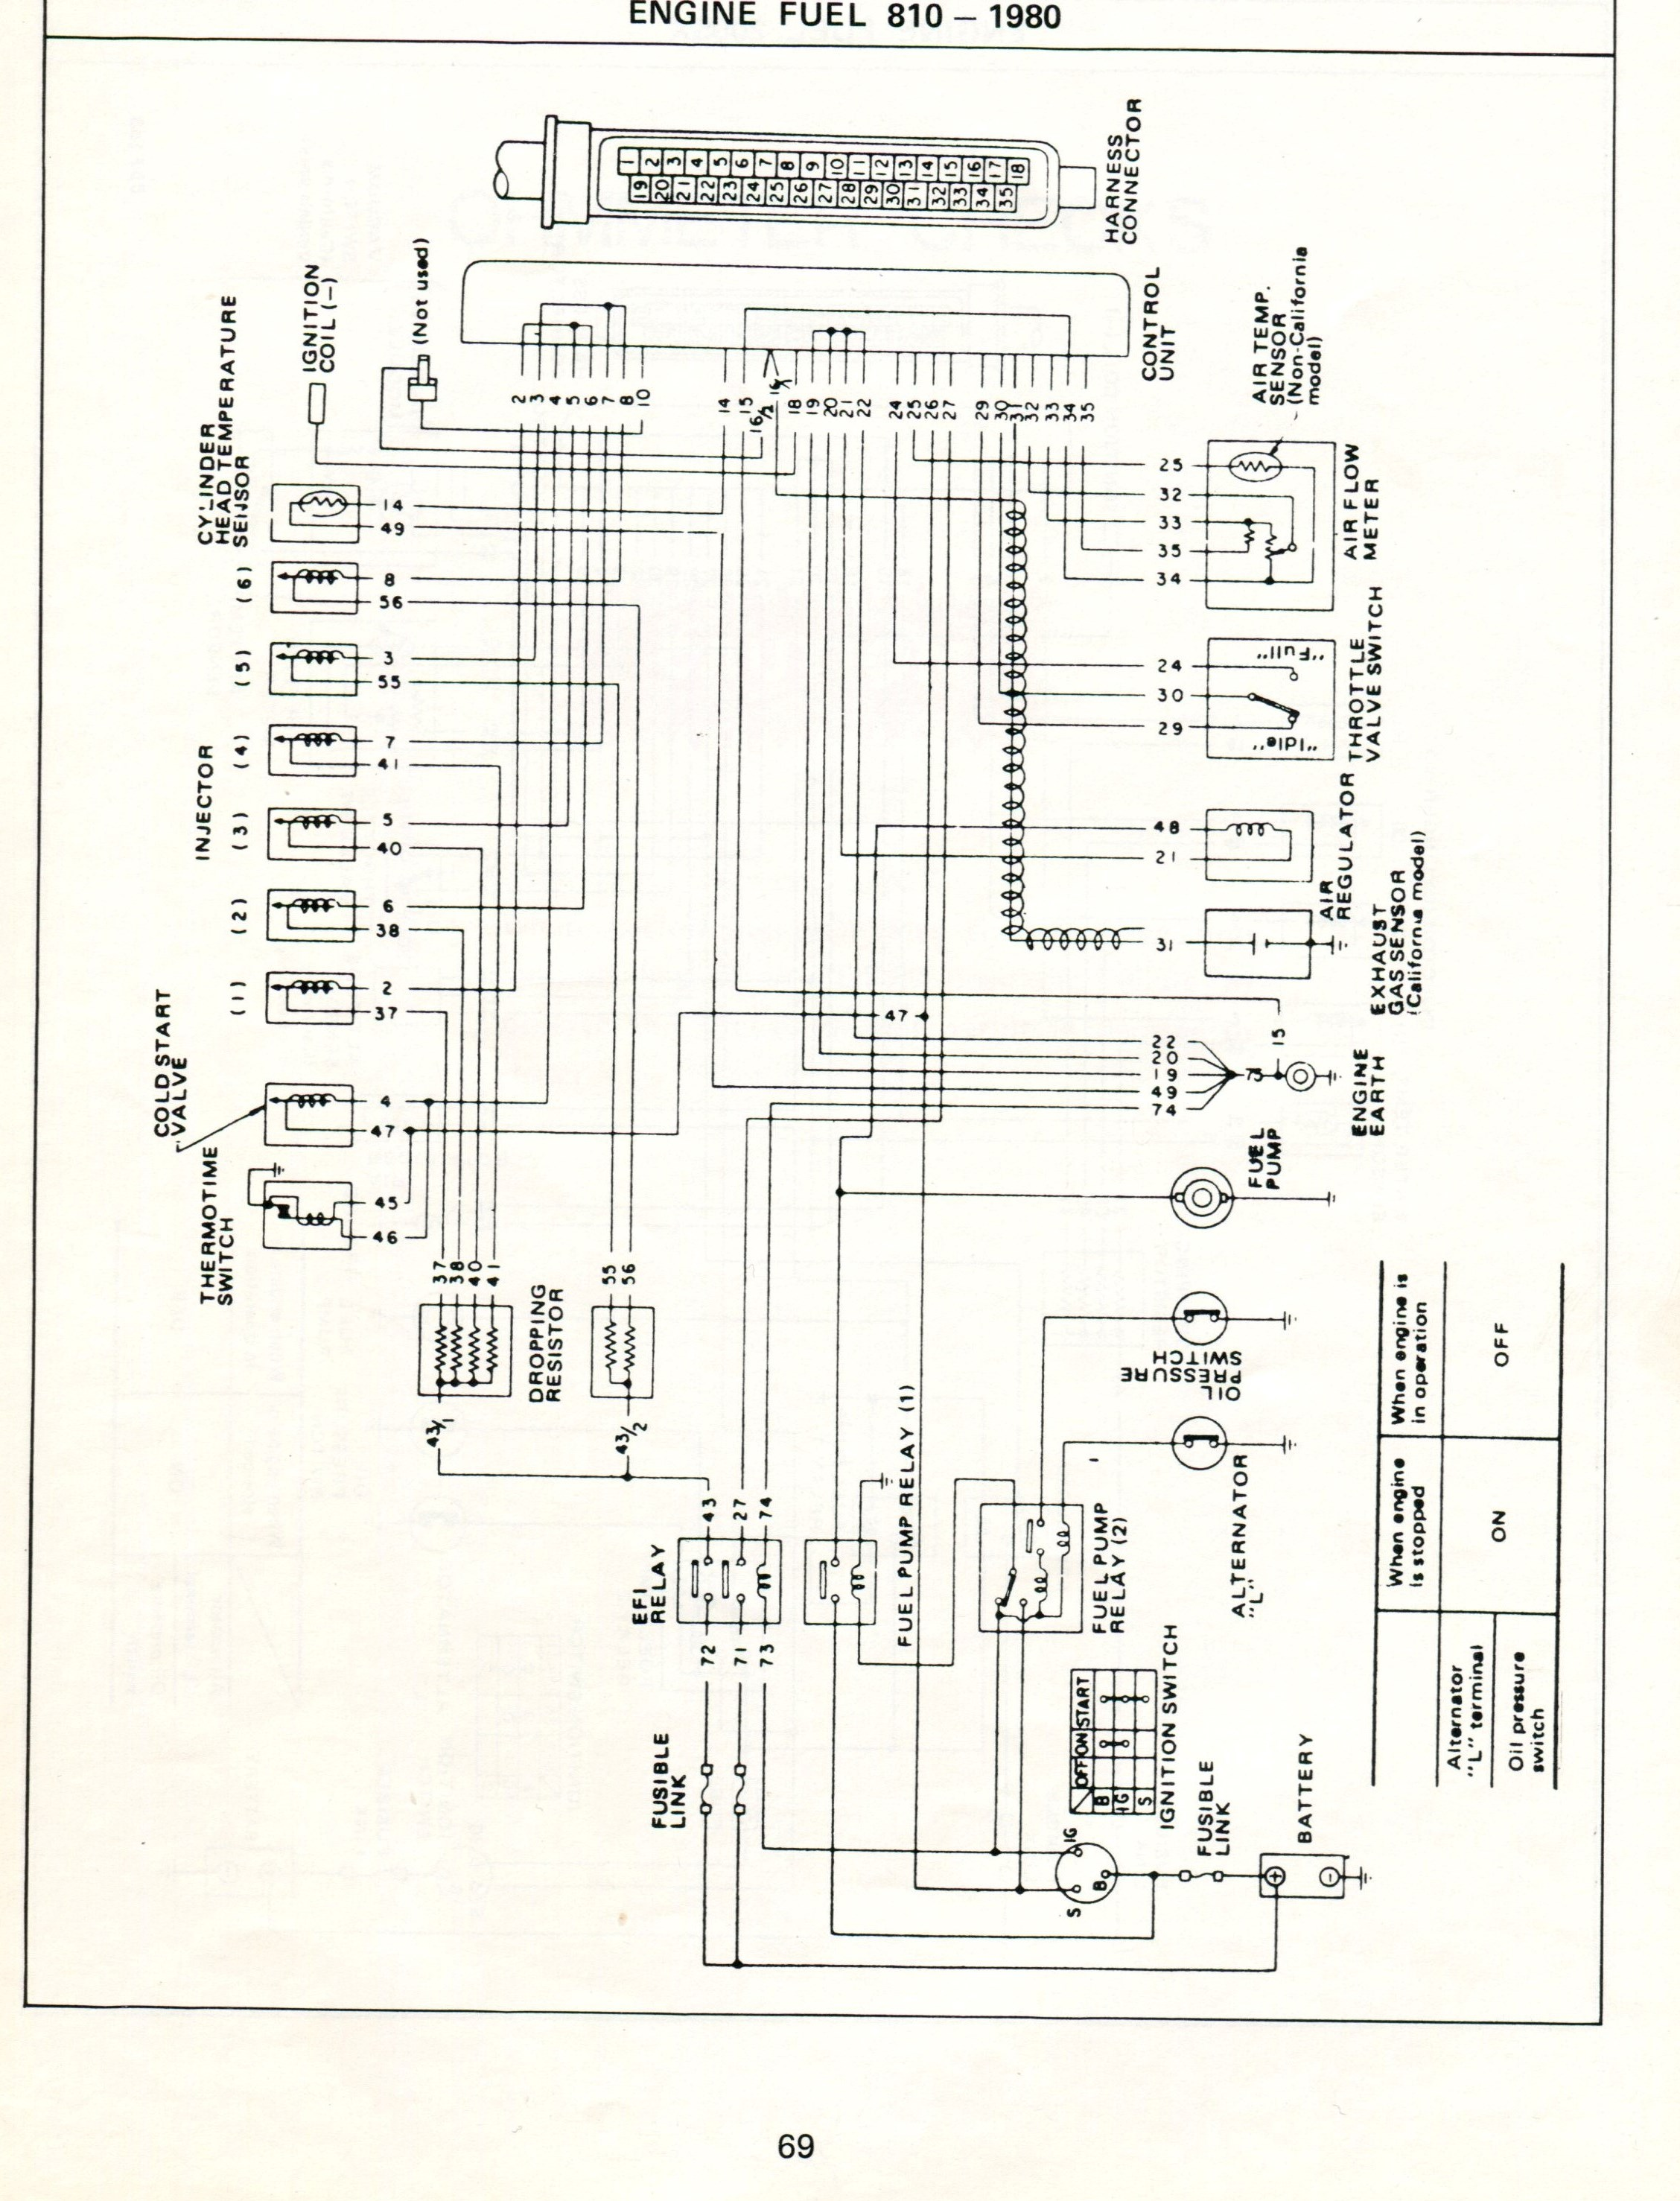 small resolution of 1983 280zx ignition wiring diagram